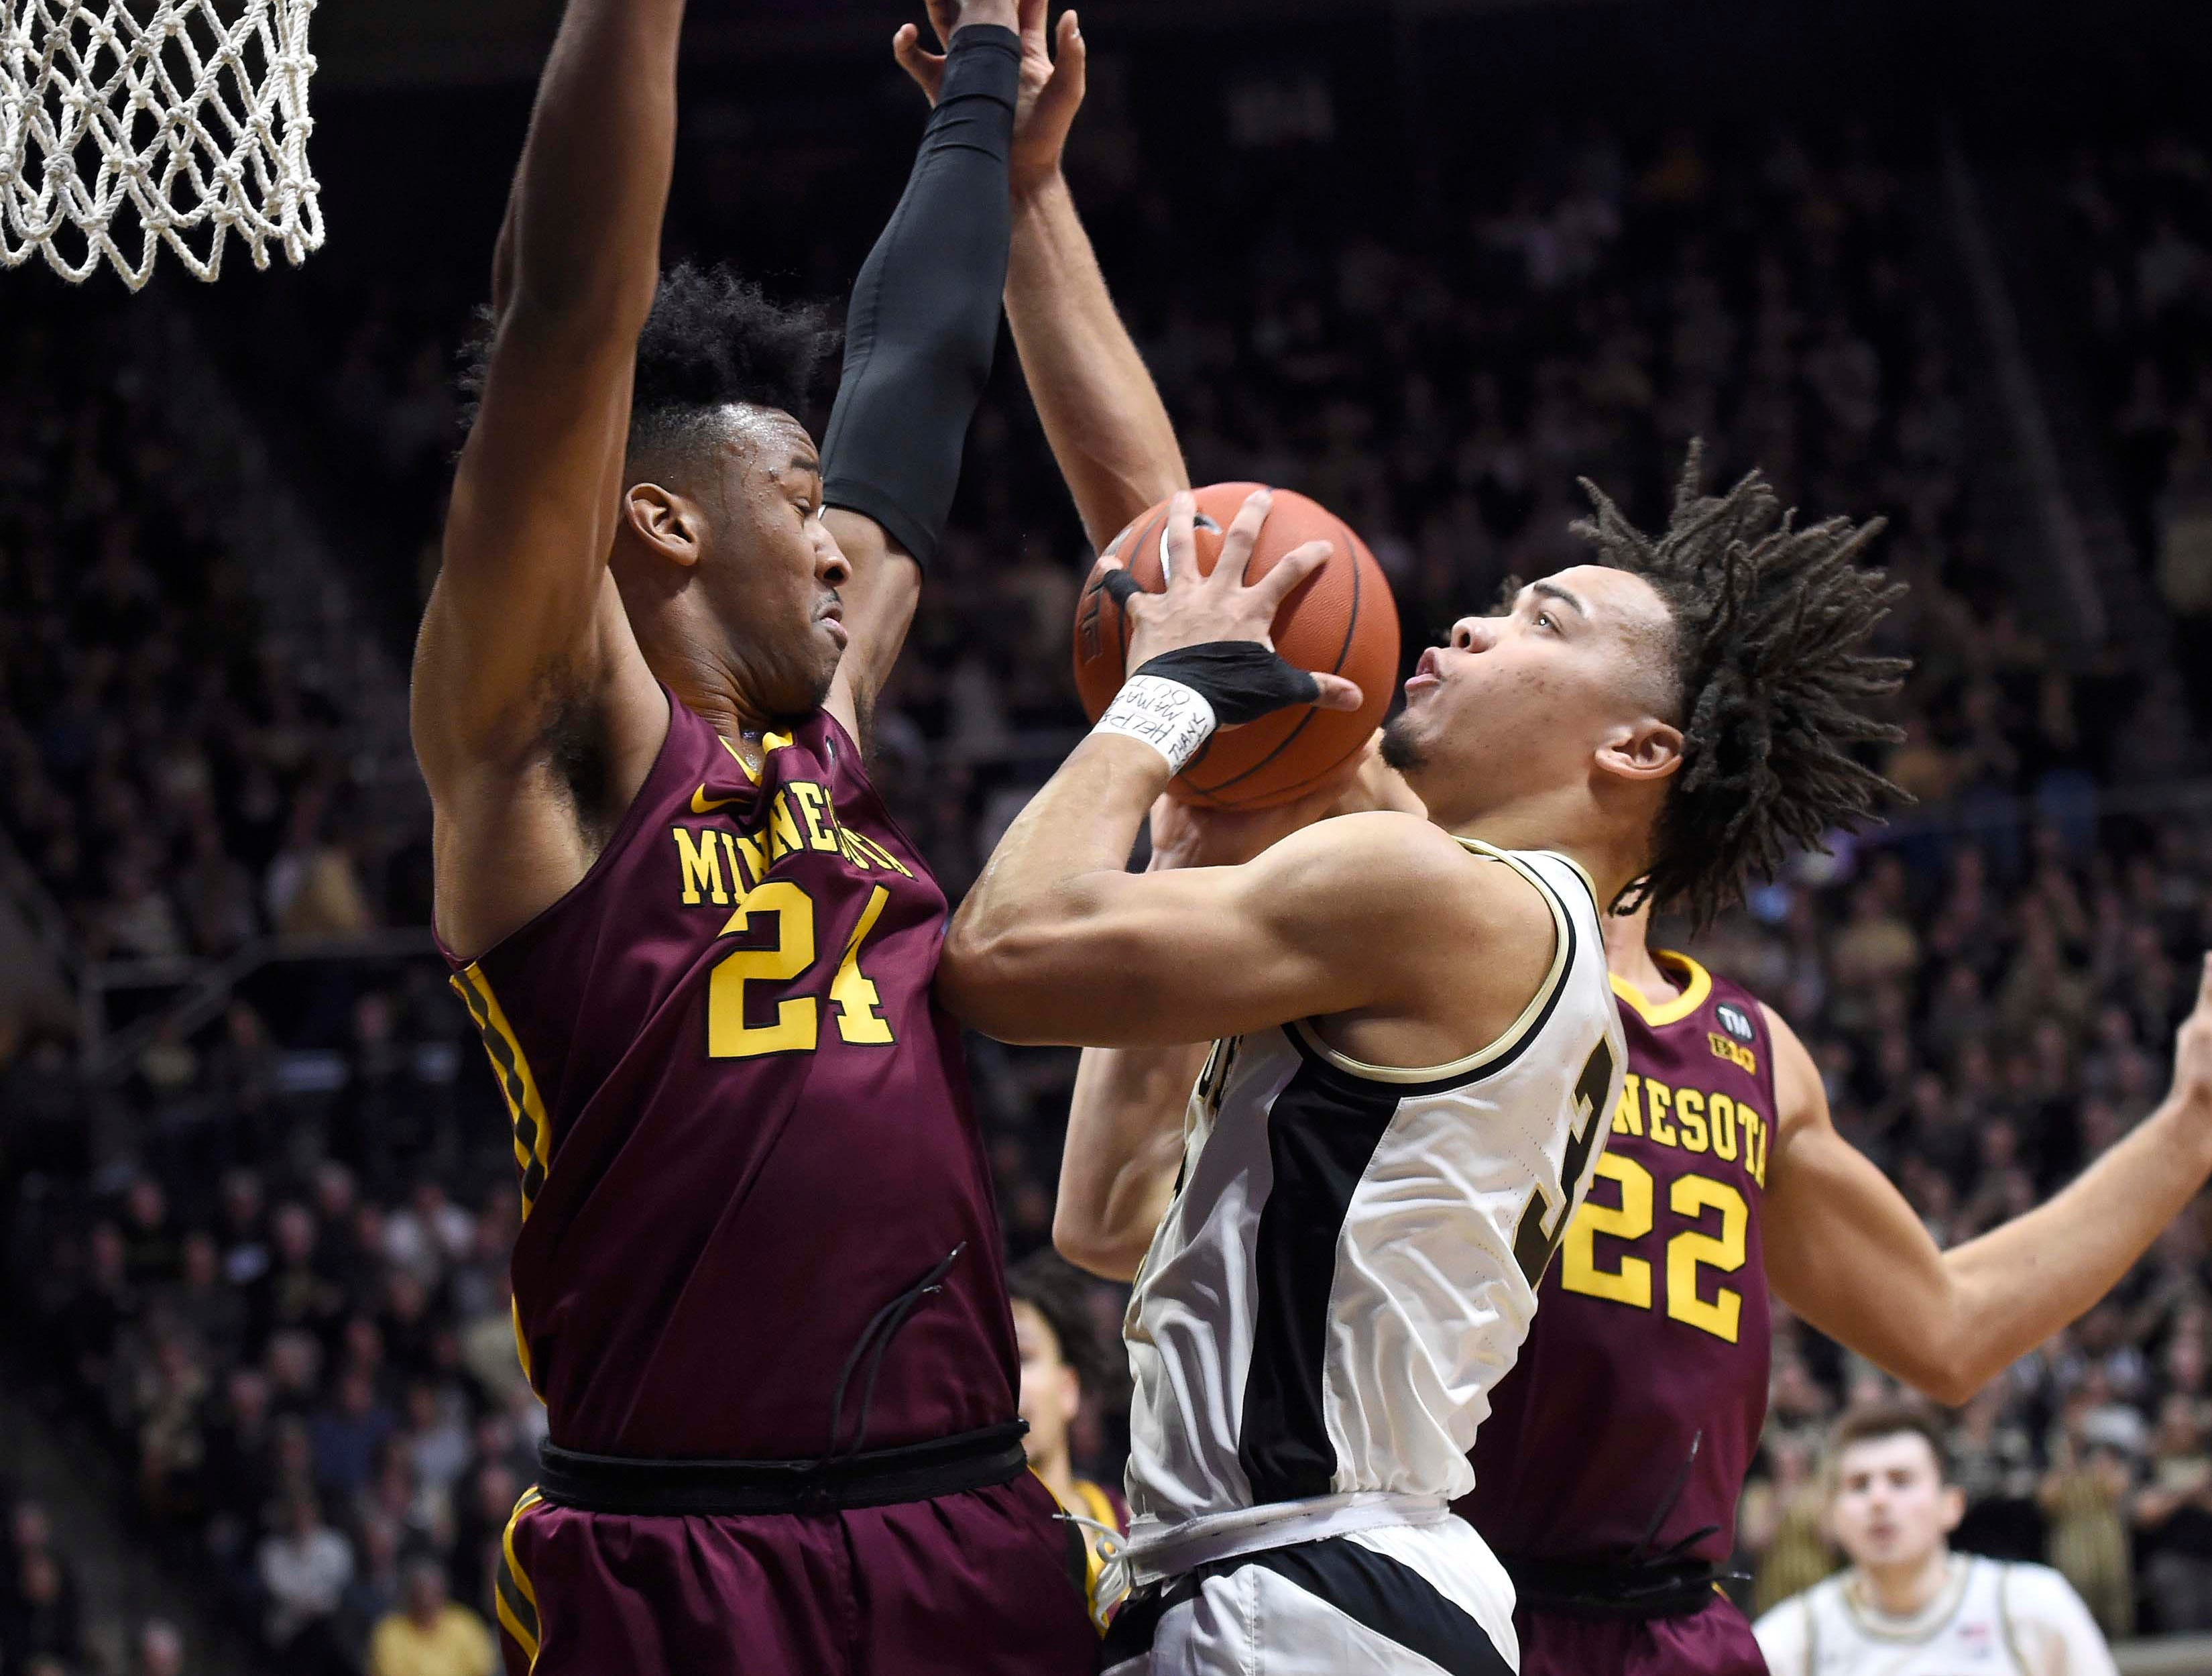 Feb 3, 2019; West Lafayette, IN, USA; iPurdue Boilermakers guard Carsen Edwards (3) shoots through the defense of Minnesota Golden Gophers forward Eric Curry (24) and guard Gabe Kalscheur (22) n the 2nd half at Mackey Arena. Mandatory Credit: Sandra Dukes-USA TODAY Sports